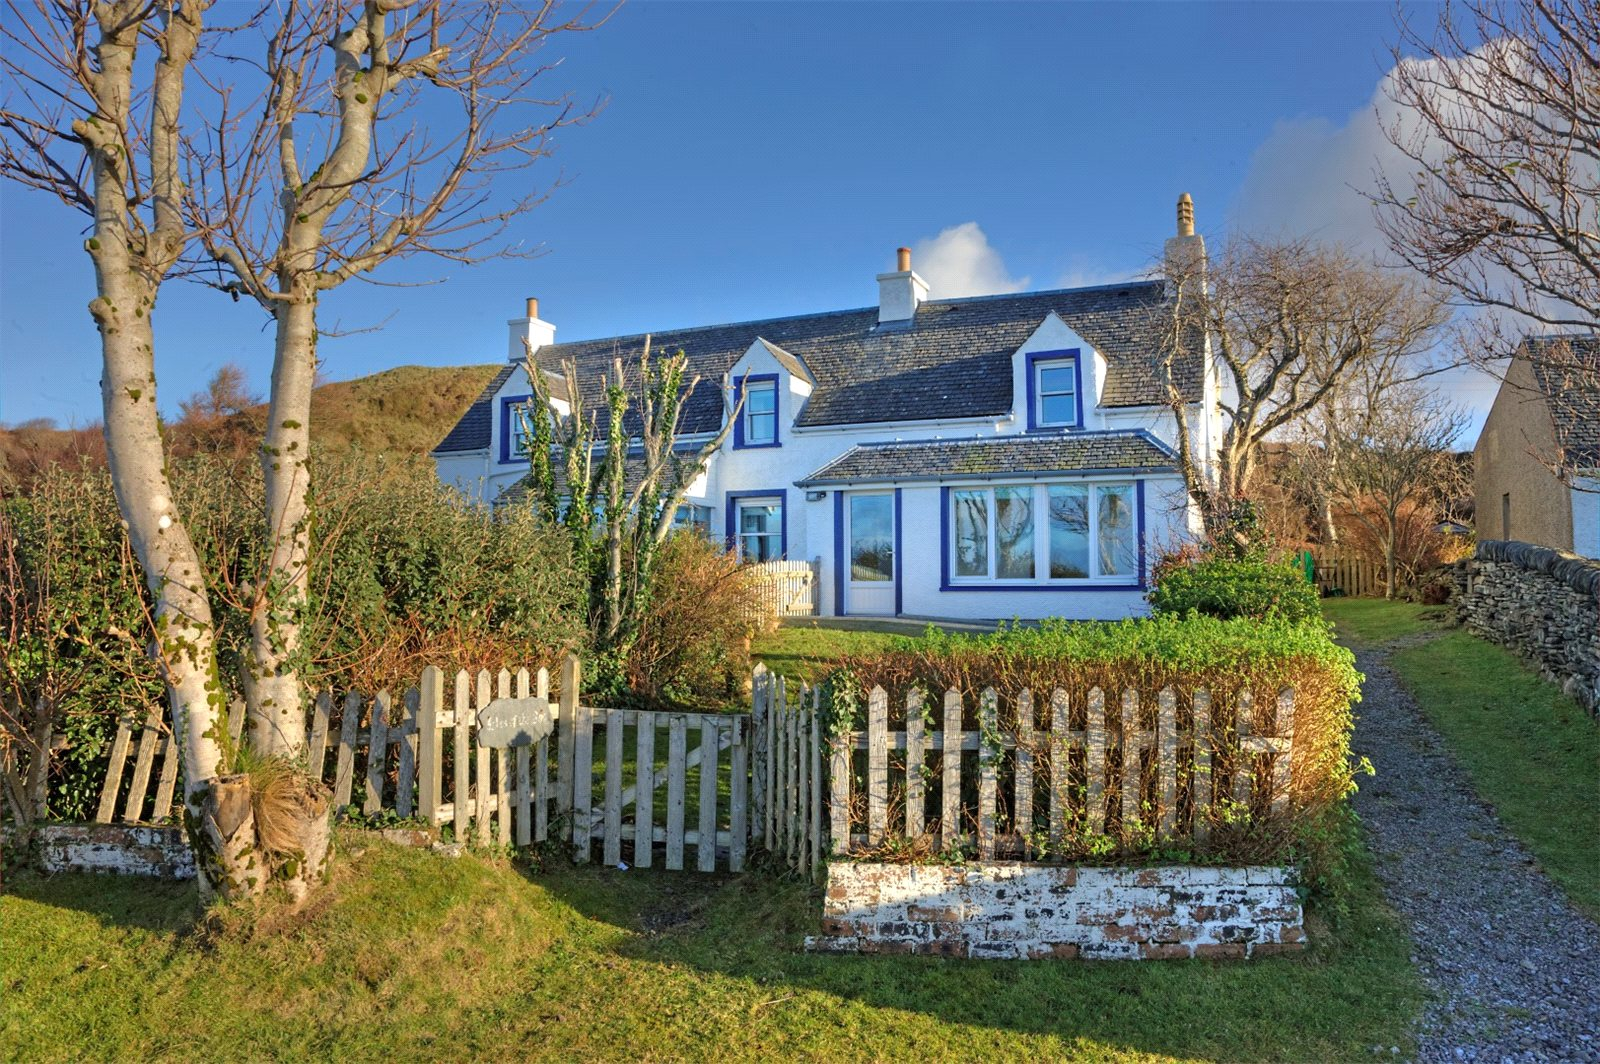 3 Bedrooms Semi Detached House for sale in Isles of the Sea, Cullipool, Oban, Argyll and Bute, PA34